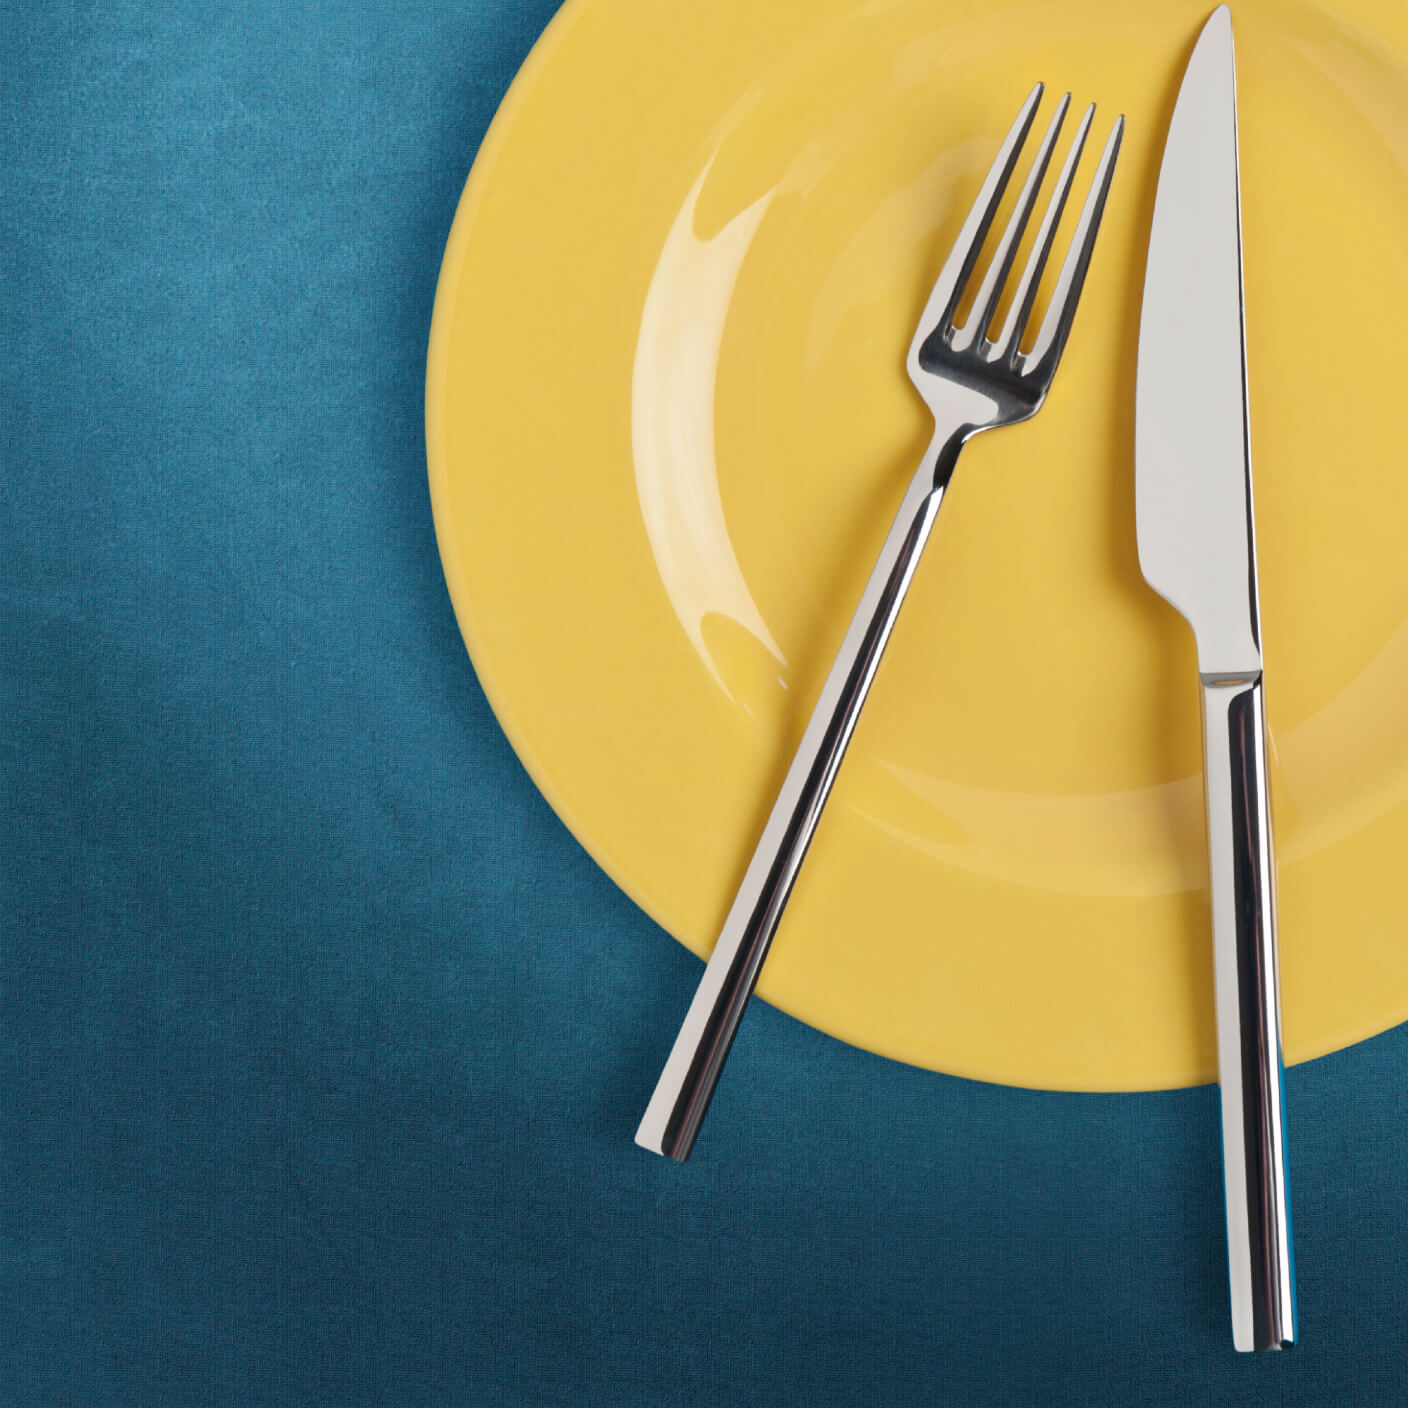 Place Setting with Yellow Plate and a Knife and Fork